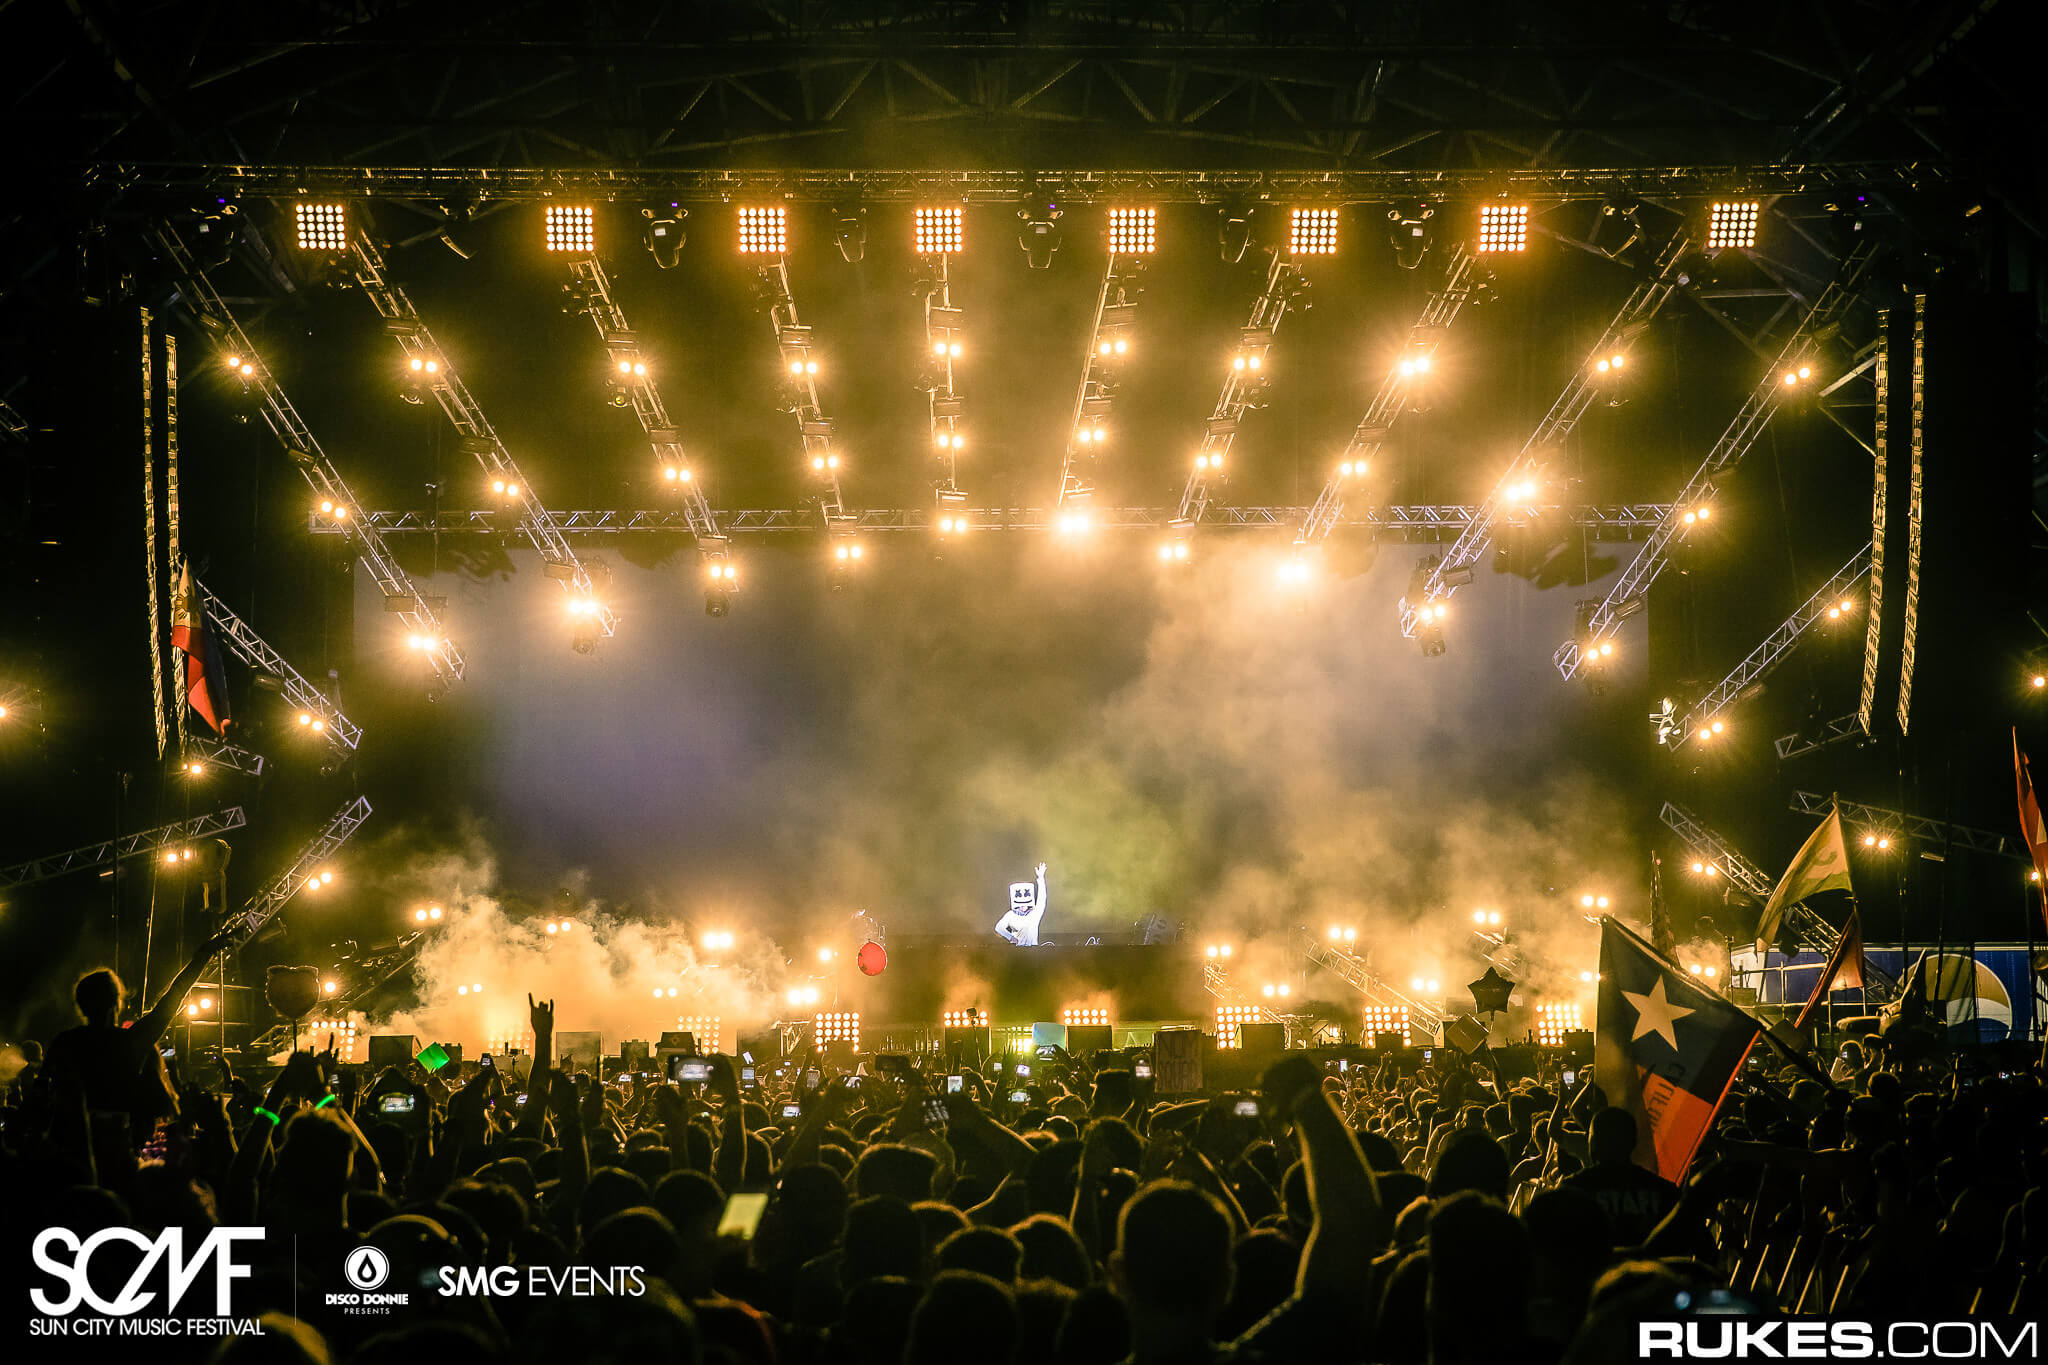 marshmello performing on main stage at sun city music festival